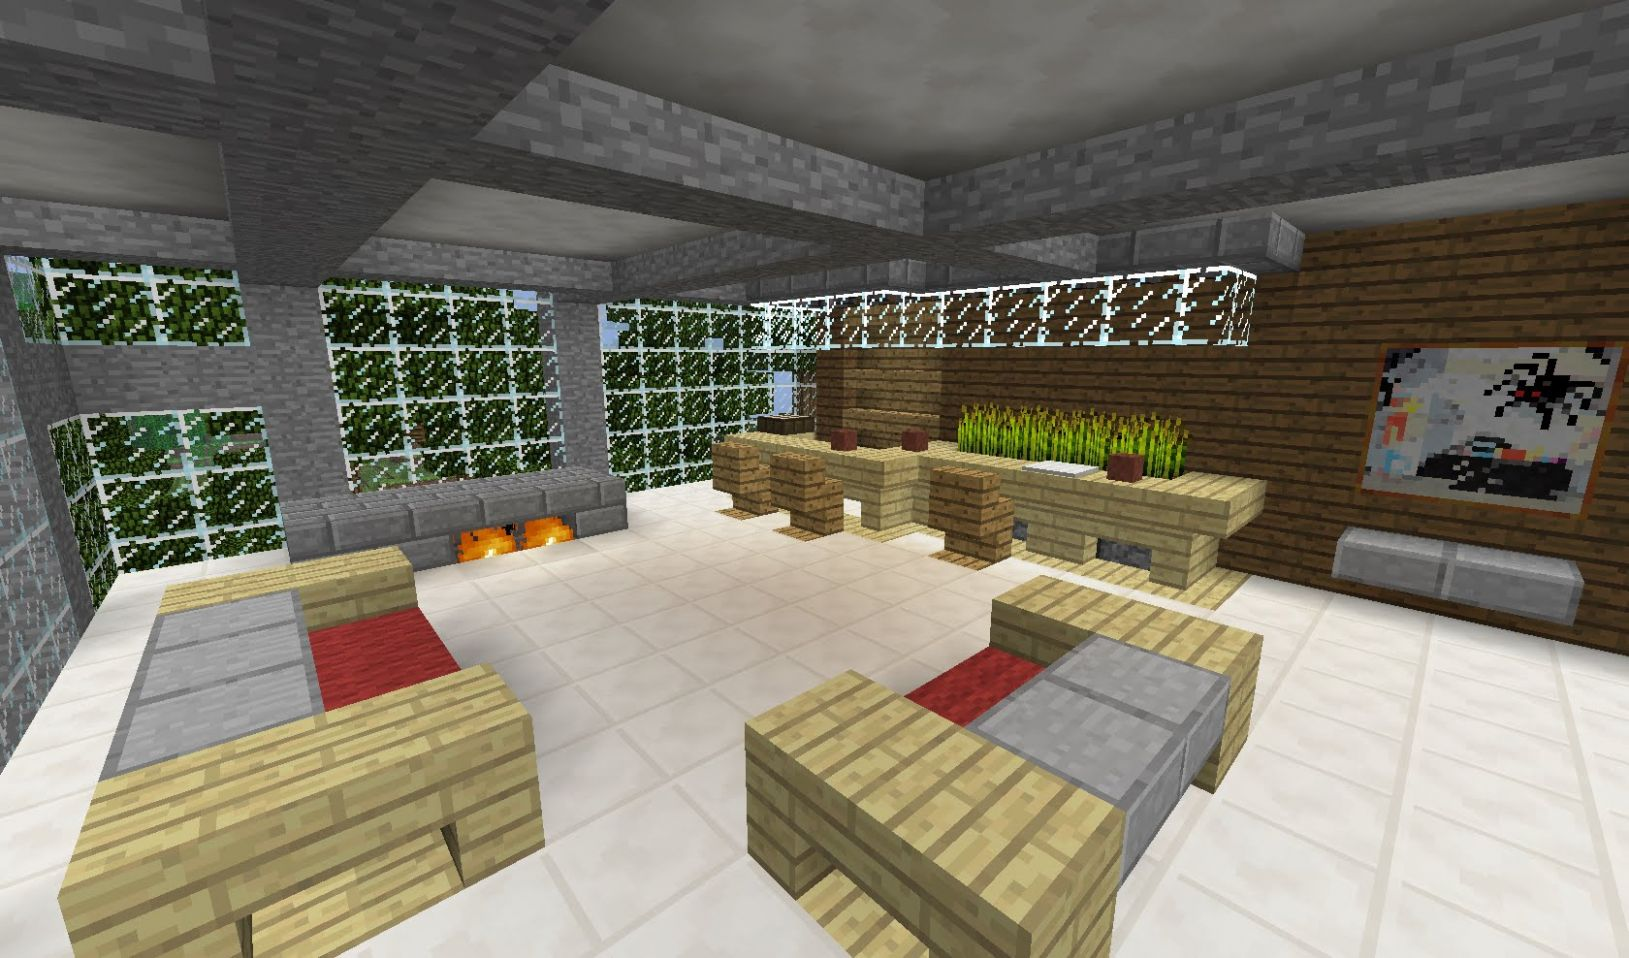 Minecraft Room Decor to Make your Room like Minecraft Games ...